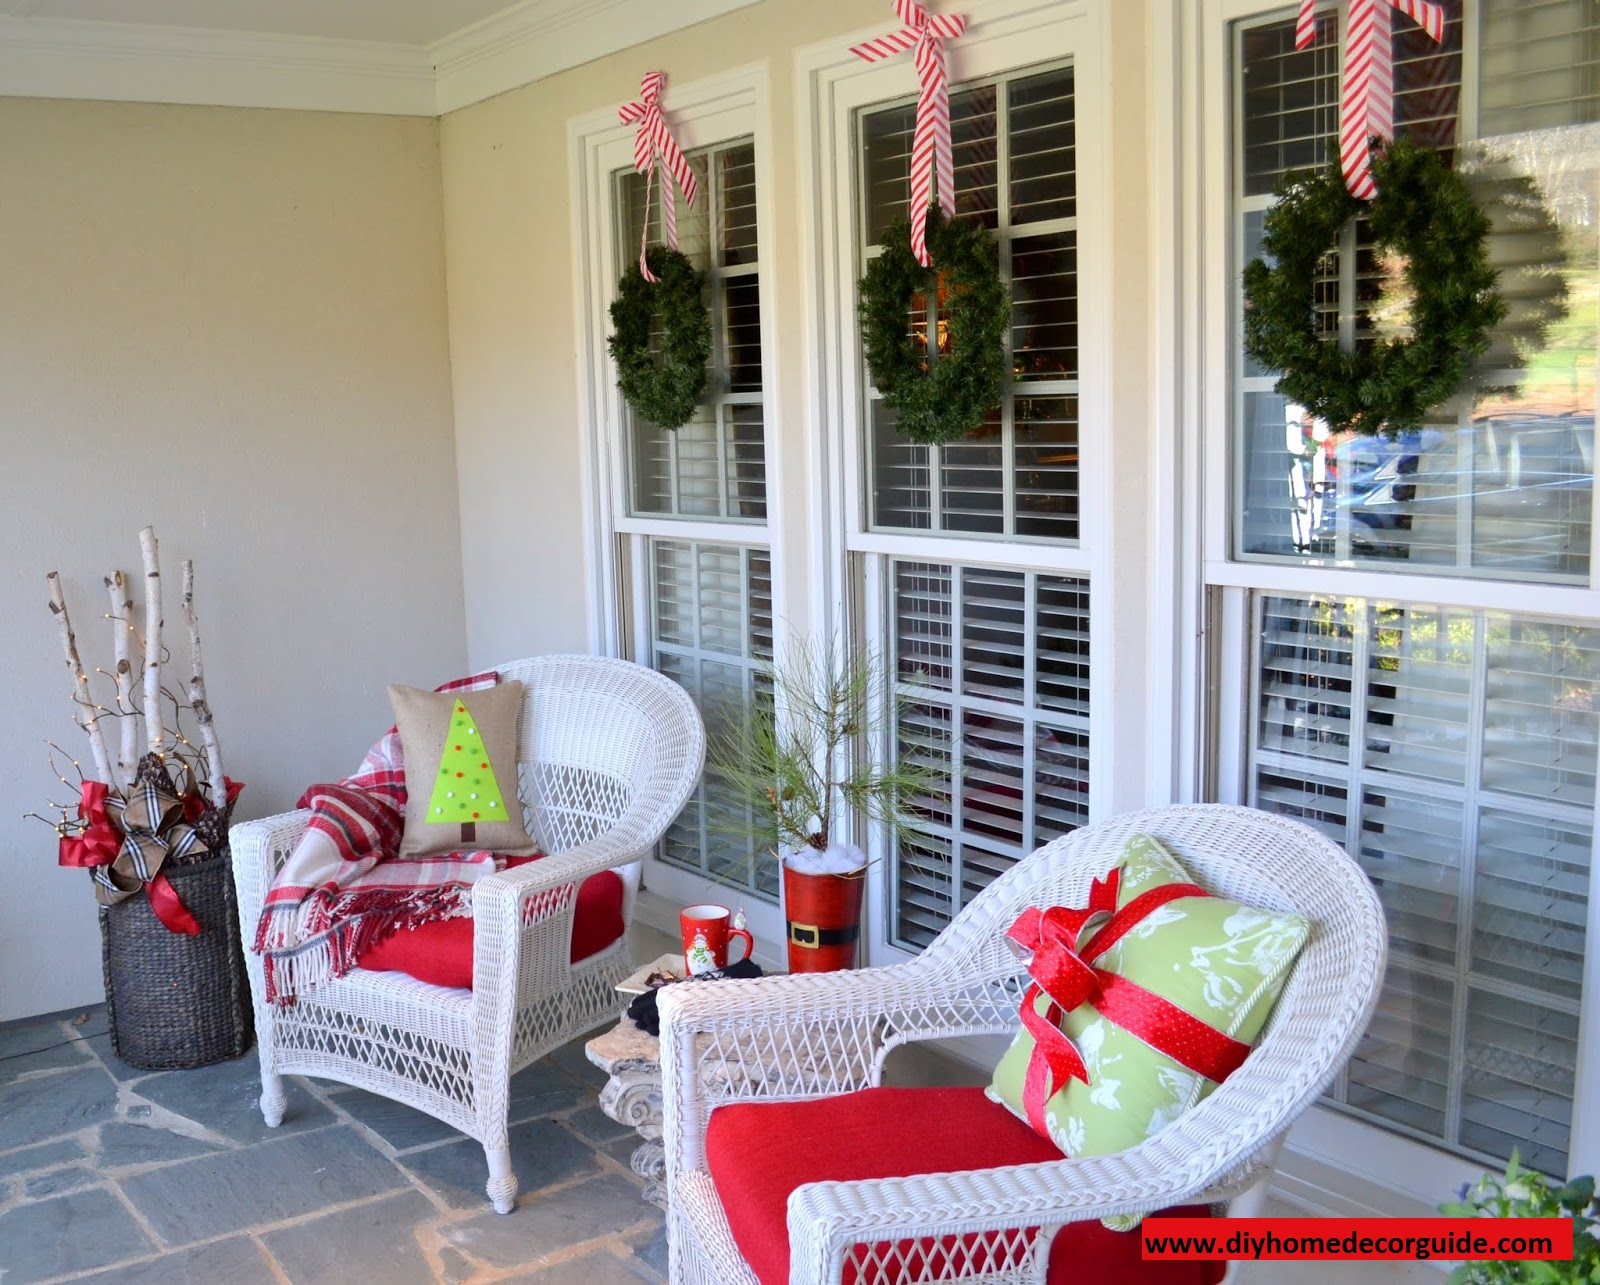 Christmas Decorations Ideas 2014 20 diy outdoor christmas decorations ideas 2014